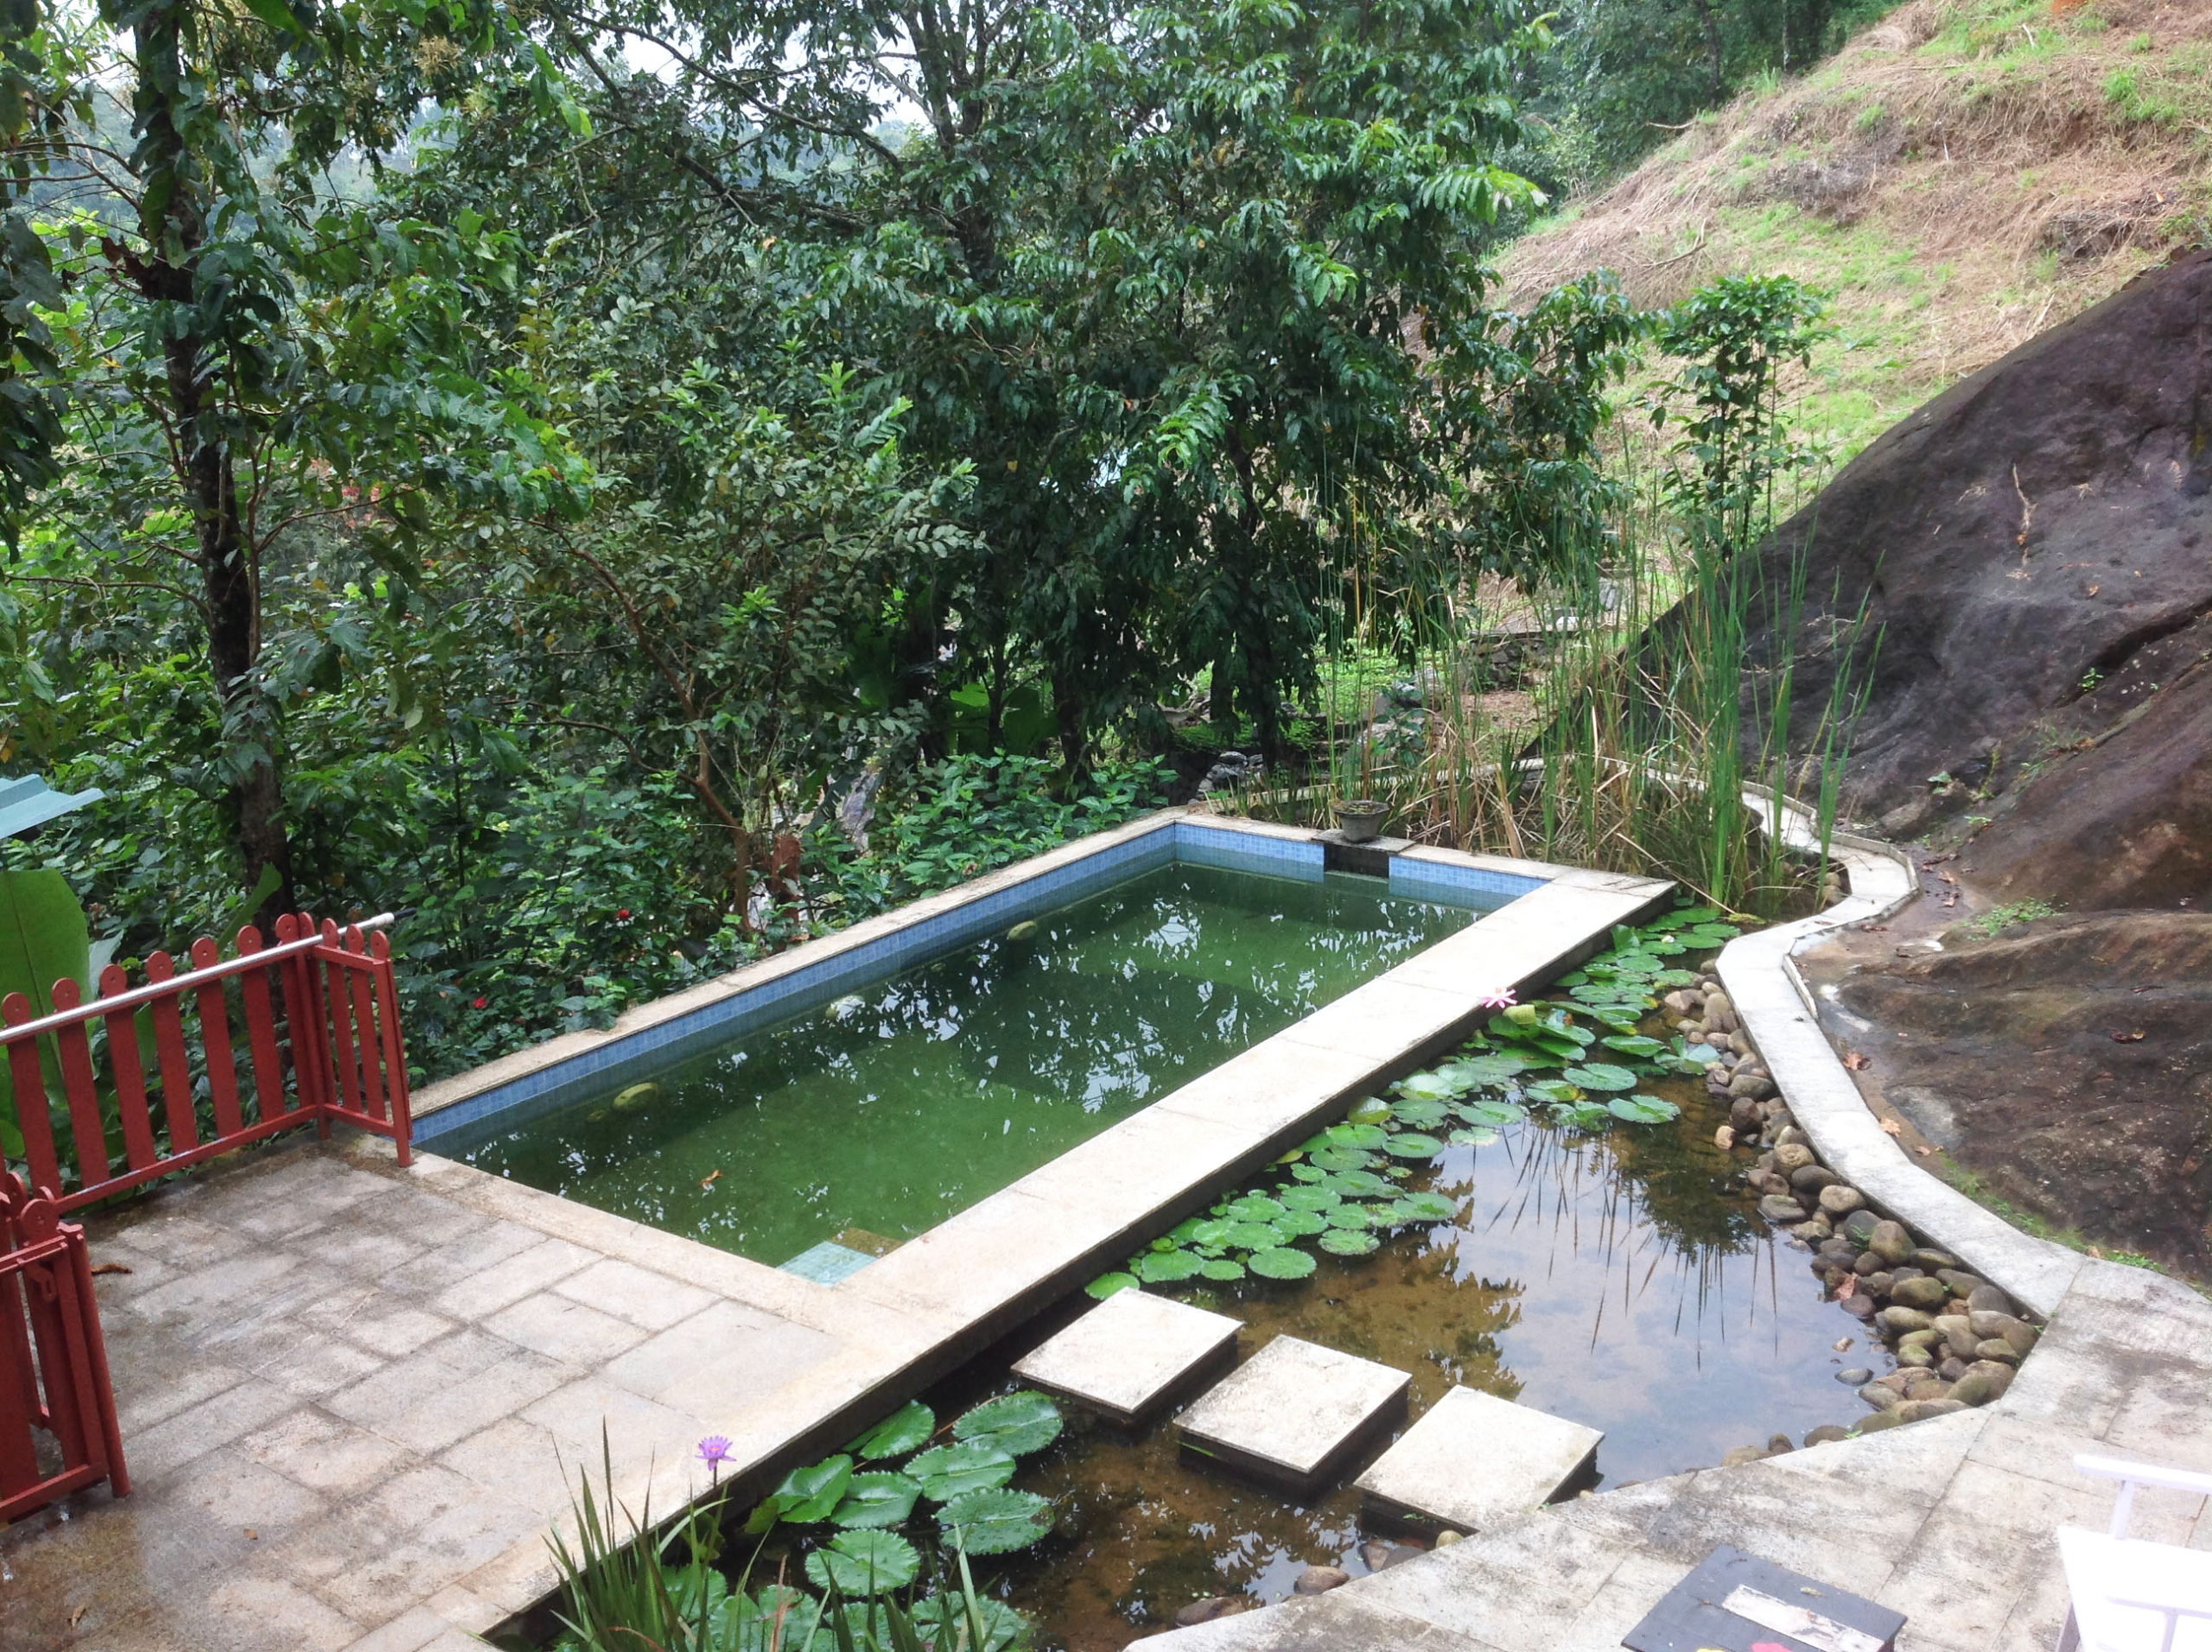 Jade Munnar Bed & Breakfast, India, Jade Munnar bathrooms and private sit out areas